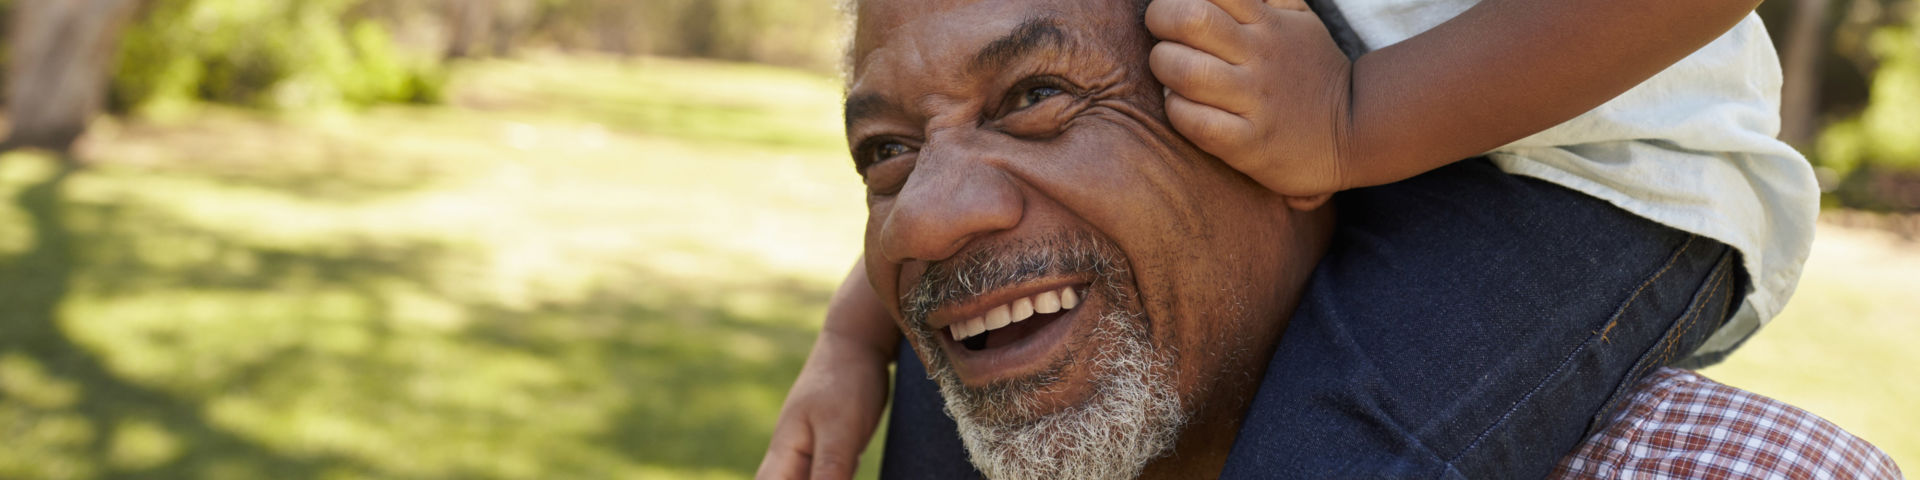 African american prostate risk